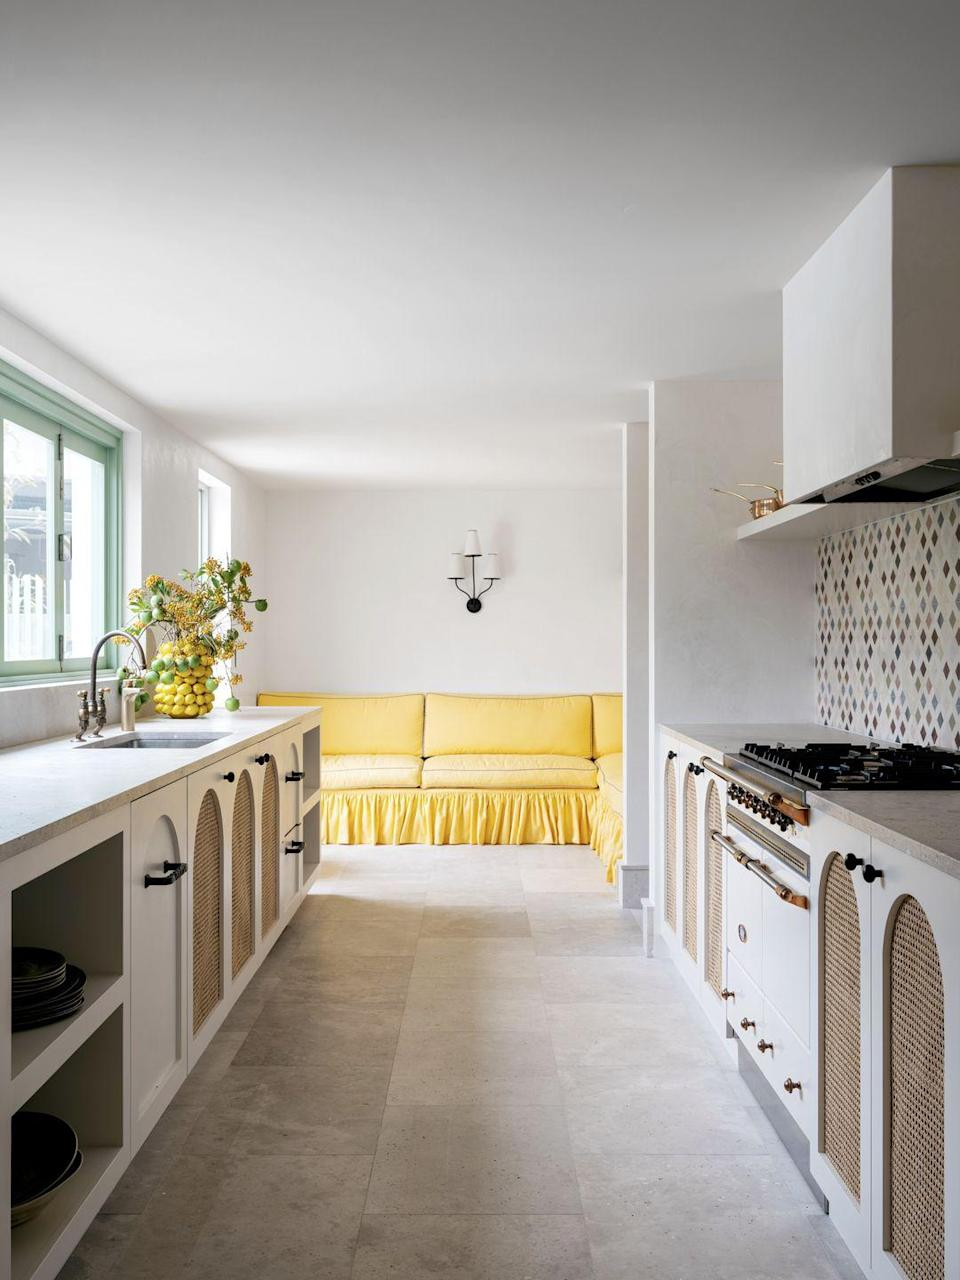 """<p>If you're blessed with an open-plan kitchen, there's even more opportunity to add colour. Furniture is an easy way to inject a bright pop of your favourite shade – a yellow banquette uplifts the kitchen in this <a href=""""https://elledecoration.co.uk/houses/a36379344/sydney-home-handelsmann-khaw/"""" rel=""""nofollow noopener"""" target=""""_blank"""" data-ylk=""""slk:Sydney home"""" class=""""link rapid-noclick-resp"""">Sydney home</a> designed by Handelsmann + Khaw. See our guide to the <a href=""""https://elledecoration.co.uk/directory/g36753767/best-vintage-furniture-restoration/"""" rel=""""nofollow noopener"""" target=""""_blank"""" data-ylk=""""slk:UK's best furniture restorers"""" class=""""link rapid-noclick-resp"""">UK's best furniture restorers</a> for upholstery experts who can add a fresh jolt of colour to existing pieces.</p>"""